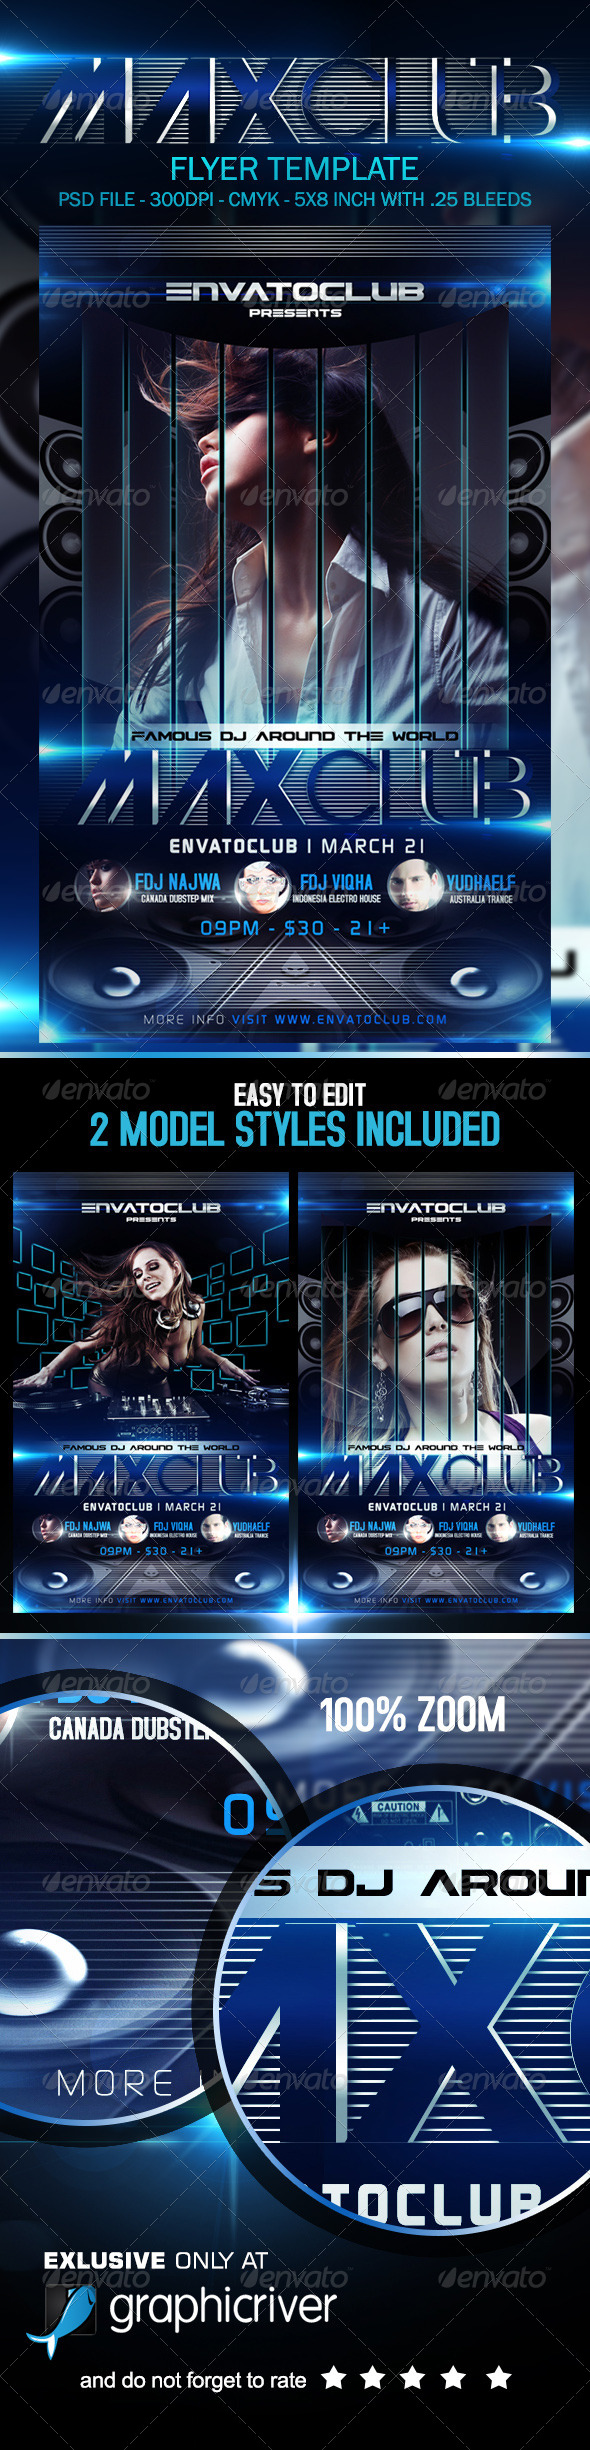 GraphicRiver Maxclube Flyer Template 7186417